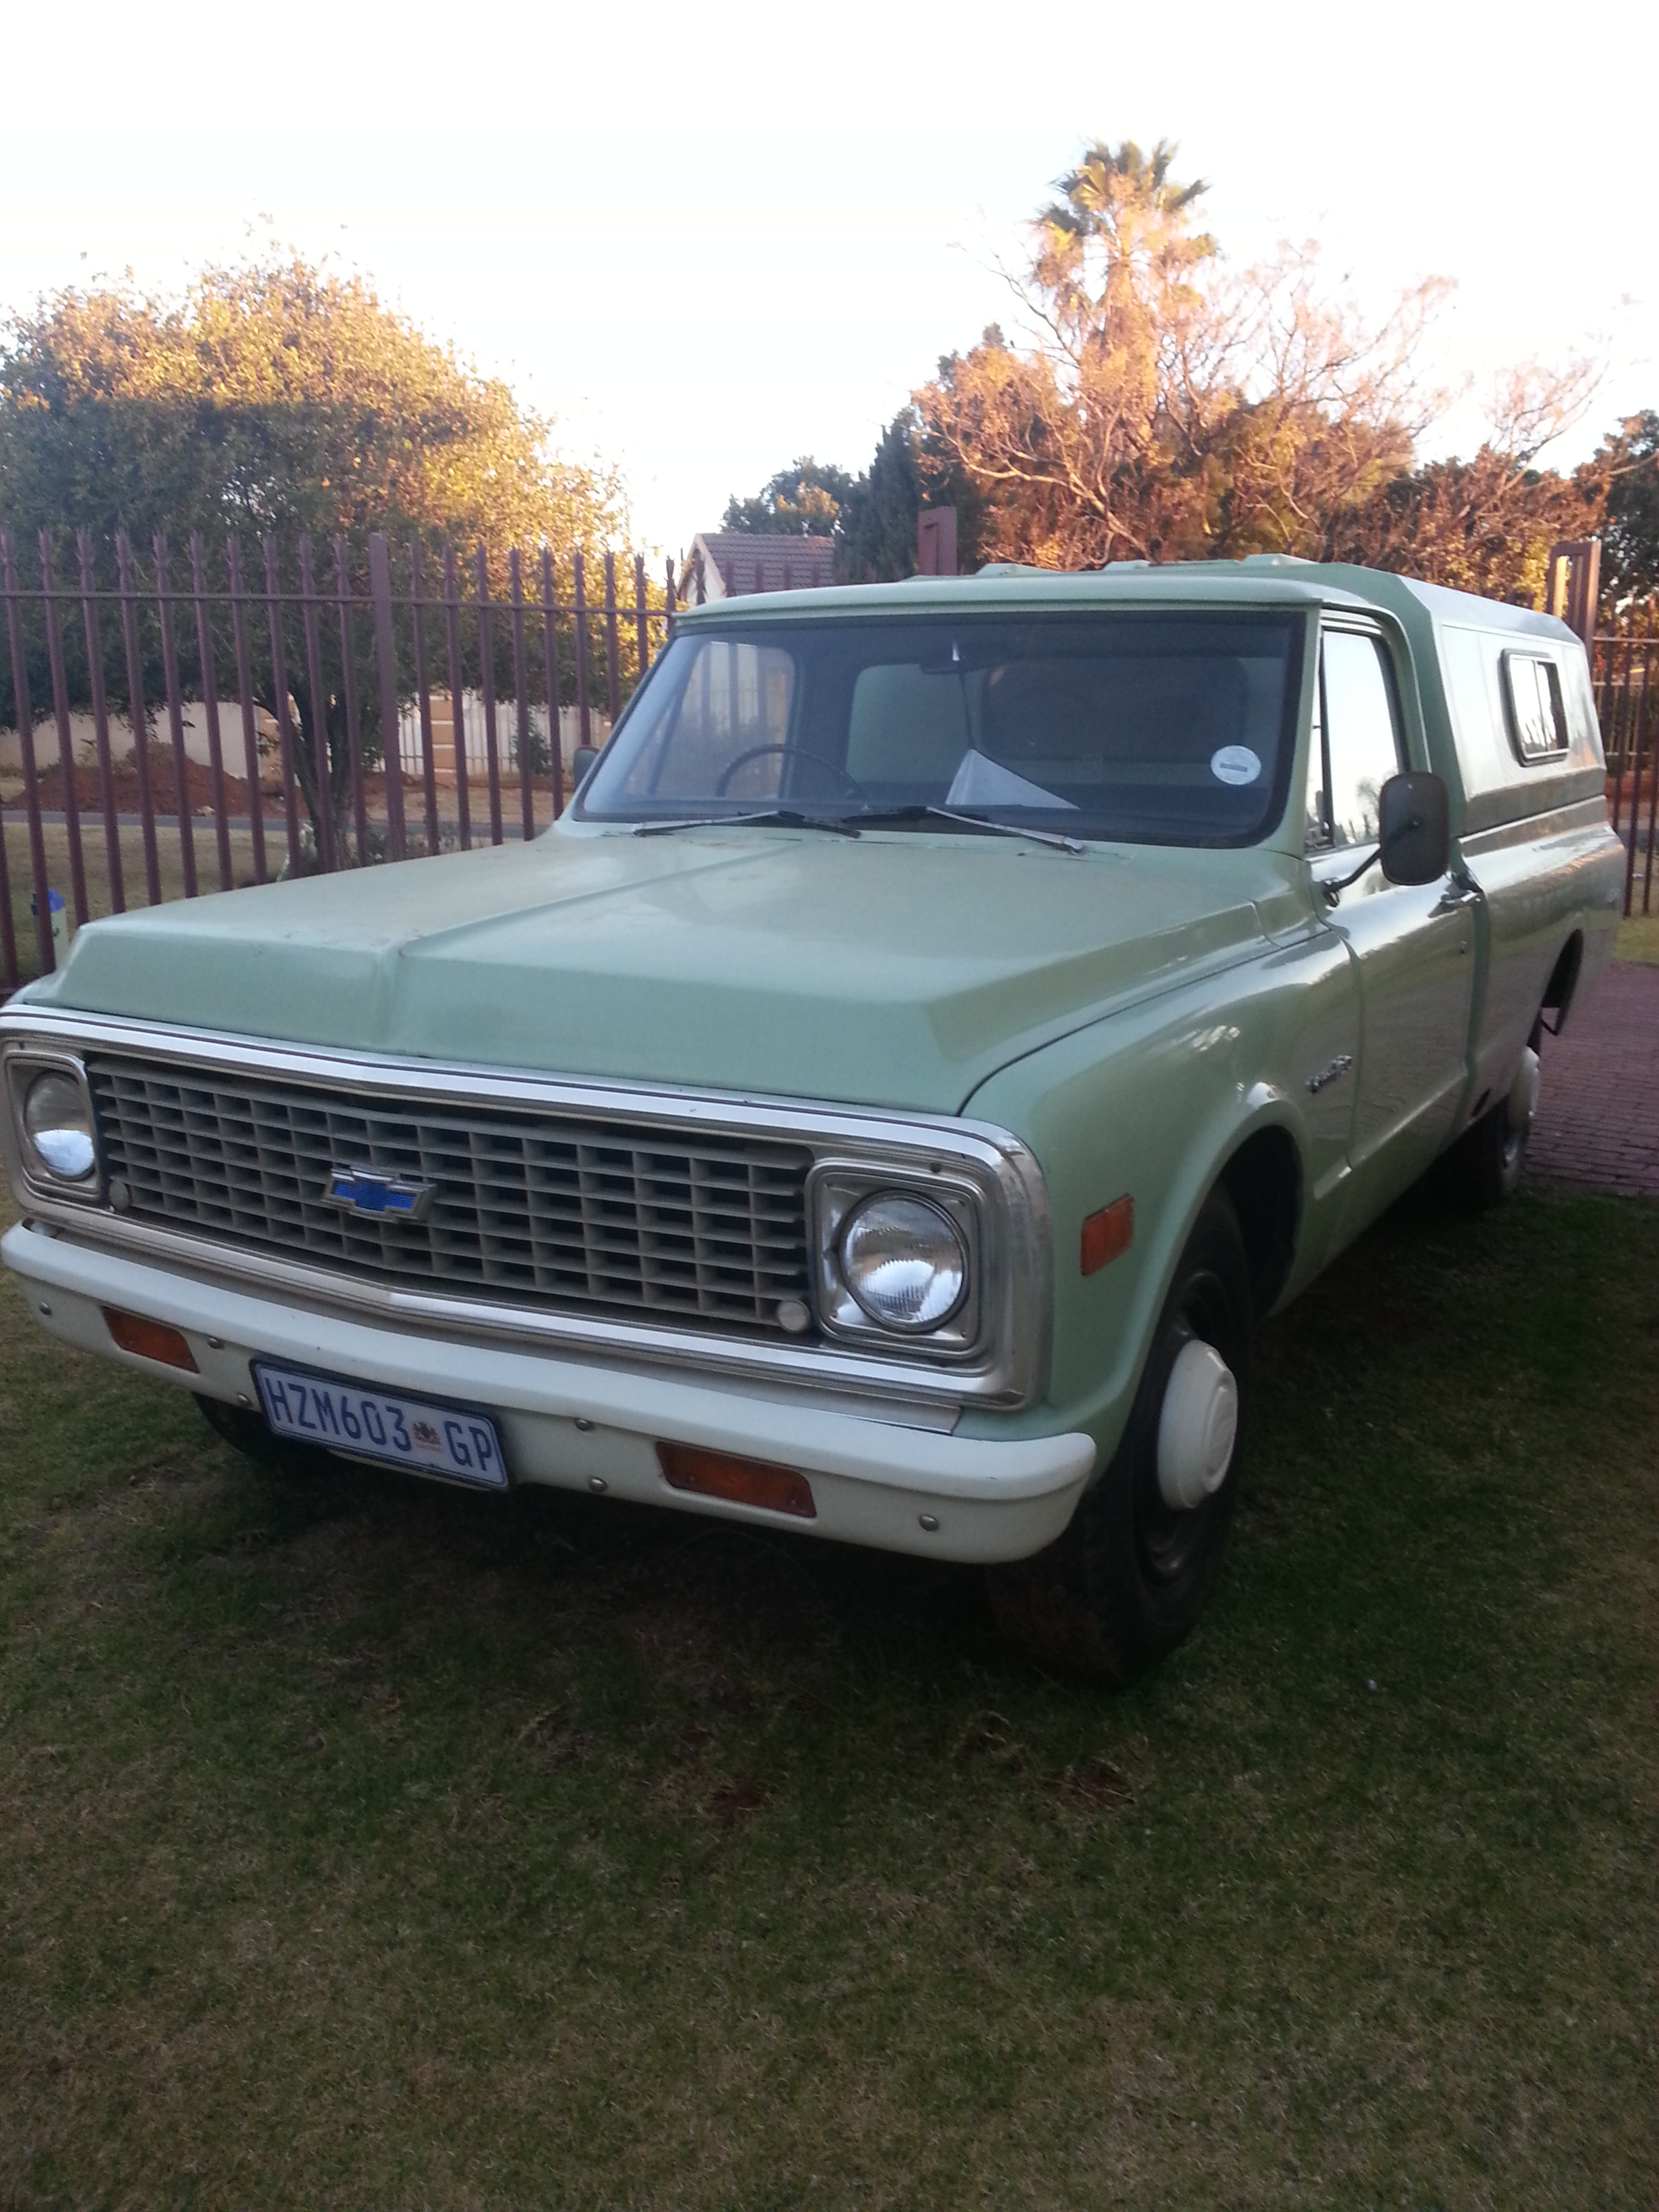 Chevyparts South Africa 1966 Chevy C10 Trucks For Sale 1972 Chevrolet C20 Pickup